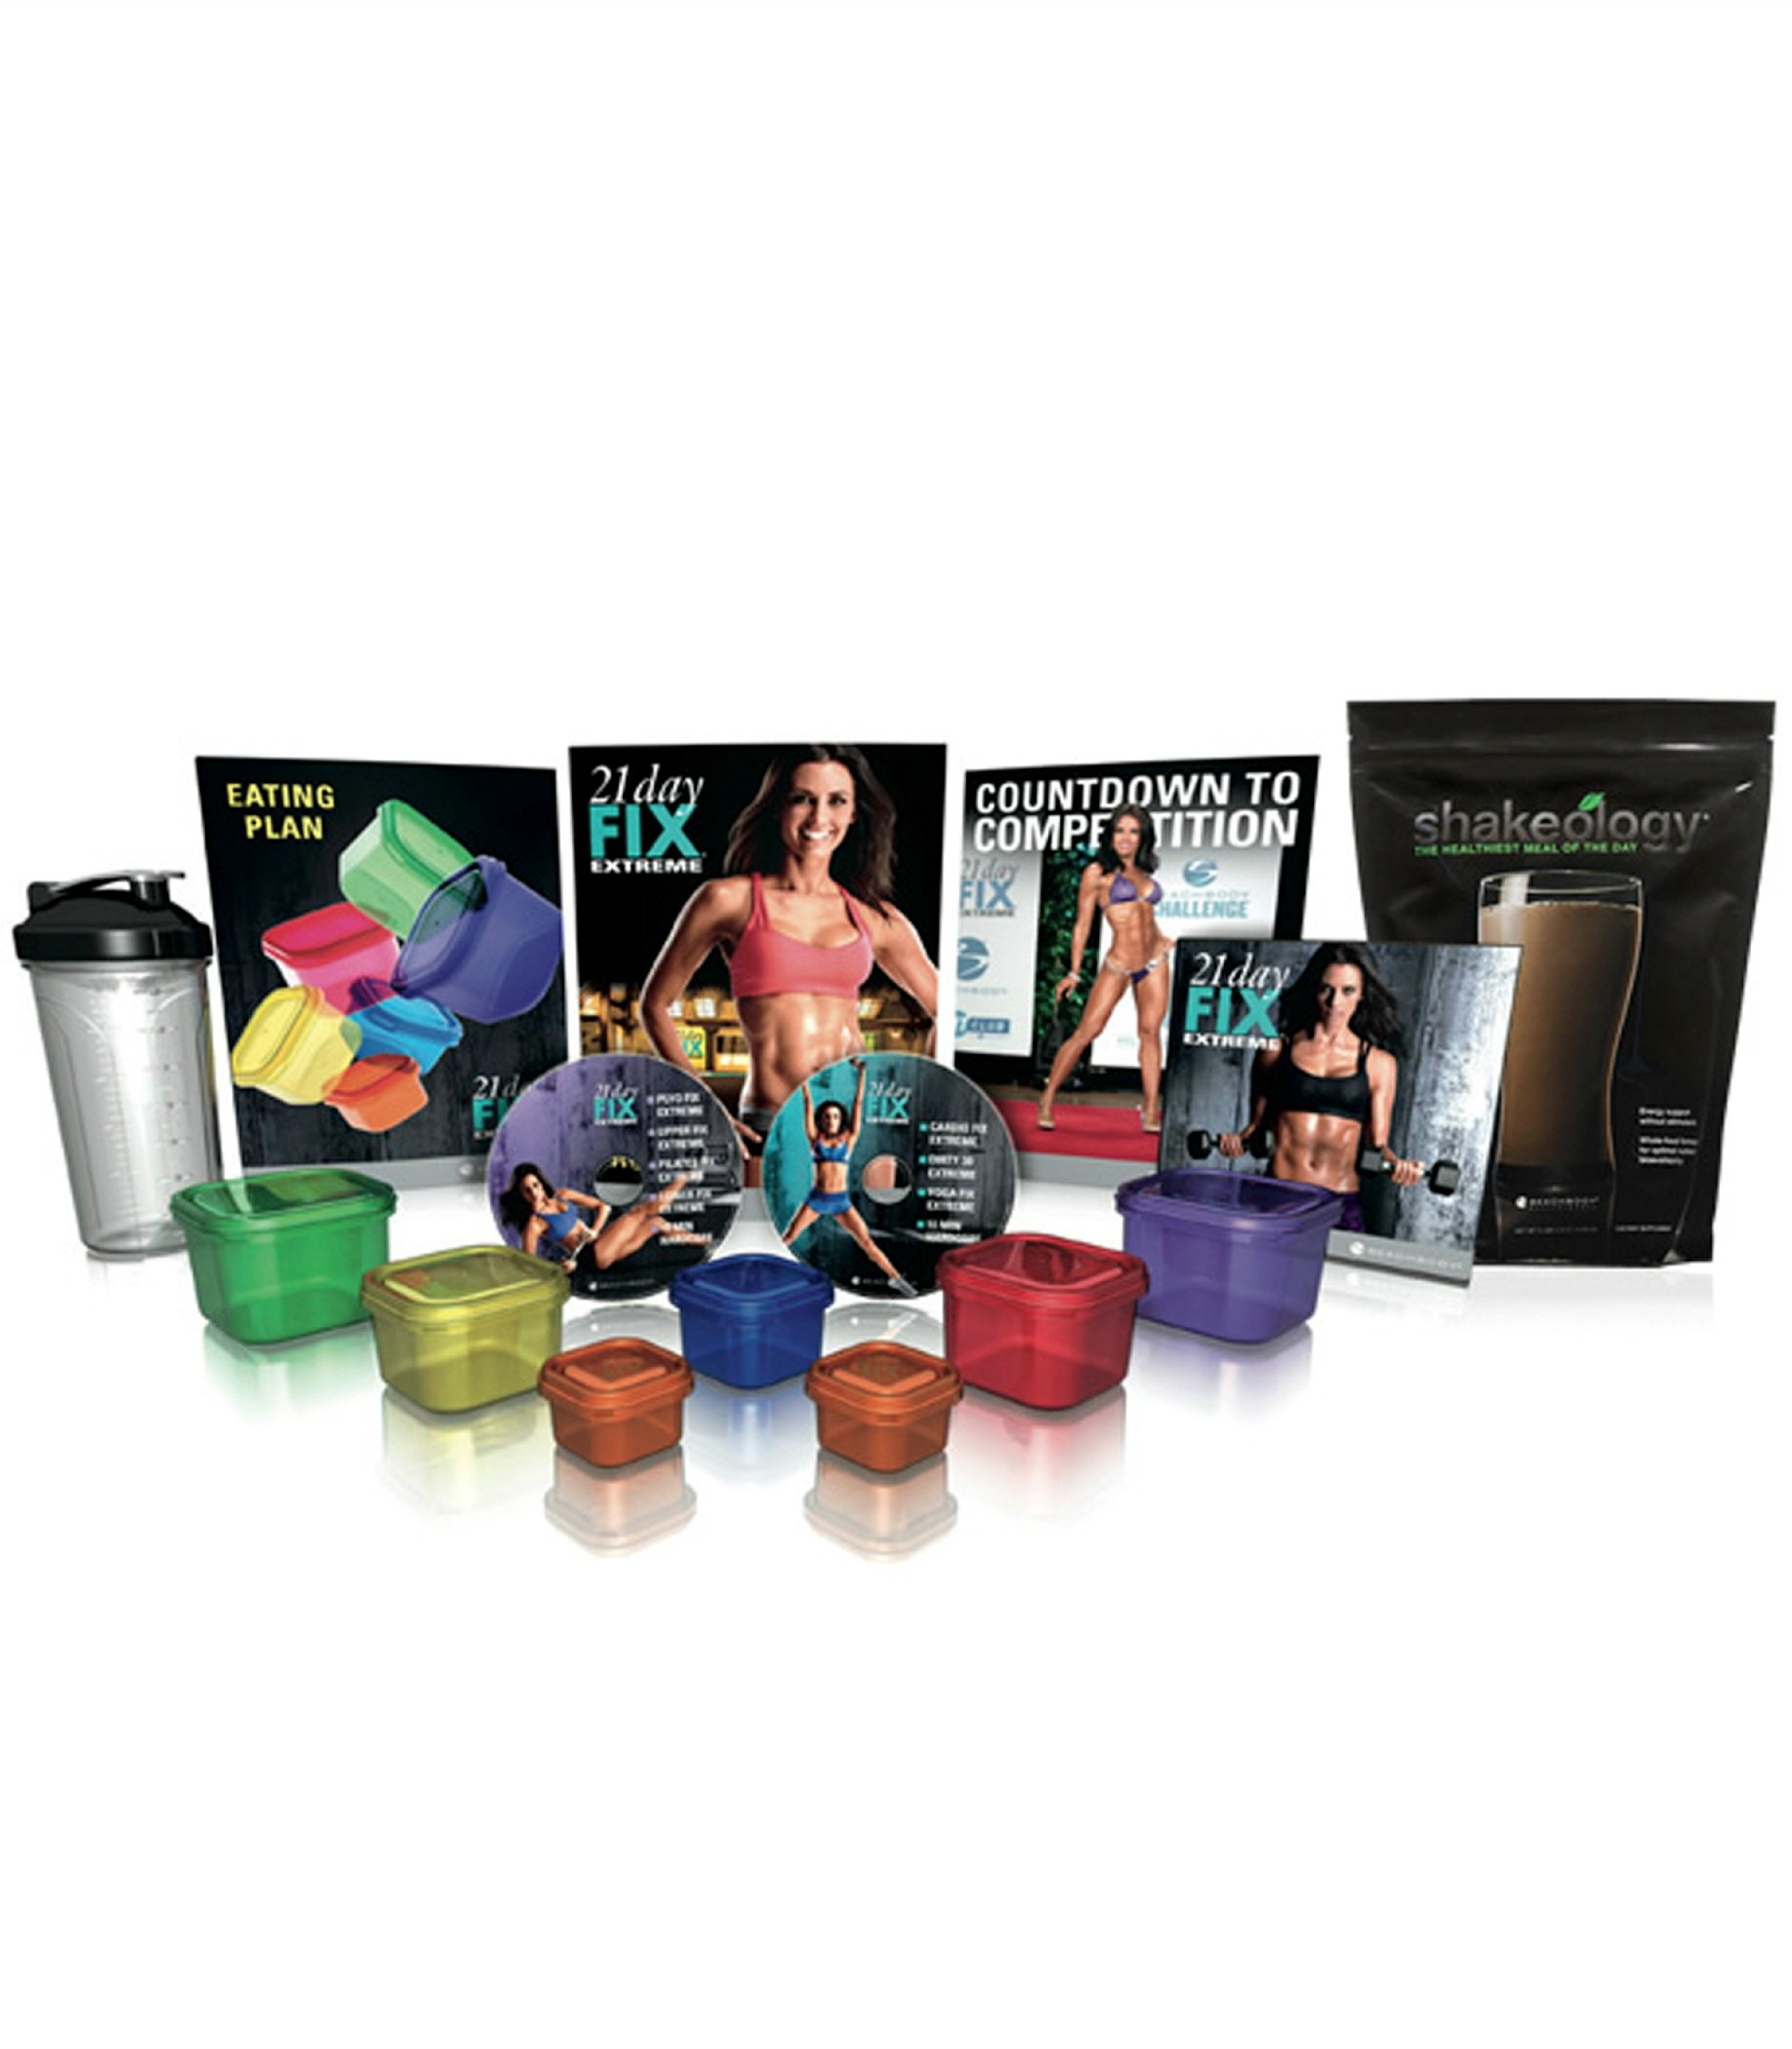 21 Day Fix Extreme & Shakeology Pack